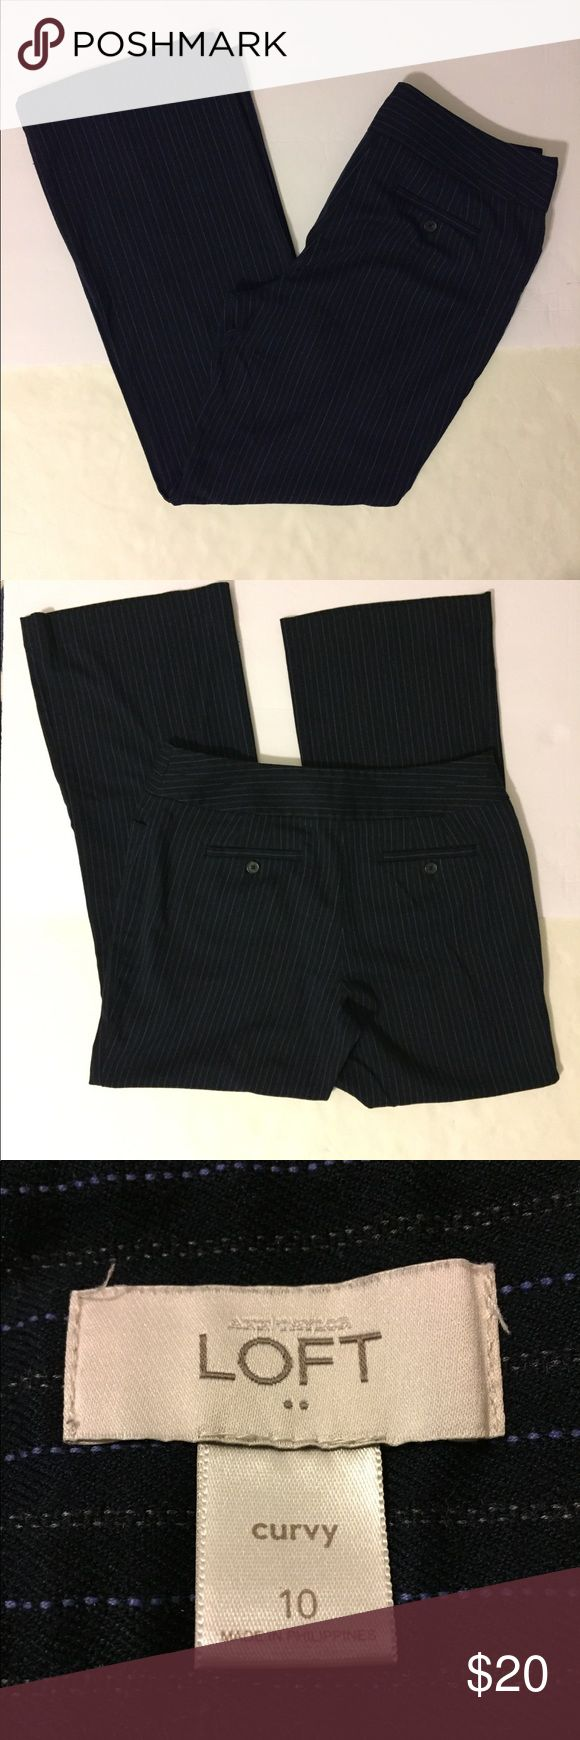 """LOFT Curvy Career Pants Nice wide-leg Ann Taylor Loft Career Pants.  Navy with purple and gray pinstripes.  The last pic shows the stripe details.  Great pre-owned condition.  No snags, holes or stains.  Size 10.  31"""" inseam.  10 1/2"""" leg opening. LOFT Pants Wide Leg"""